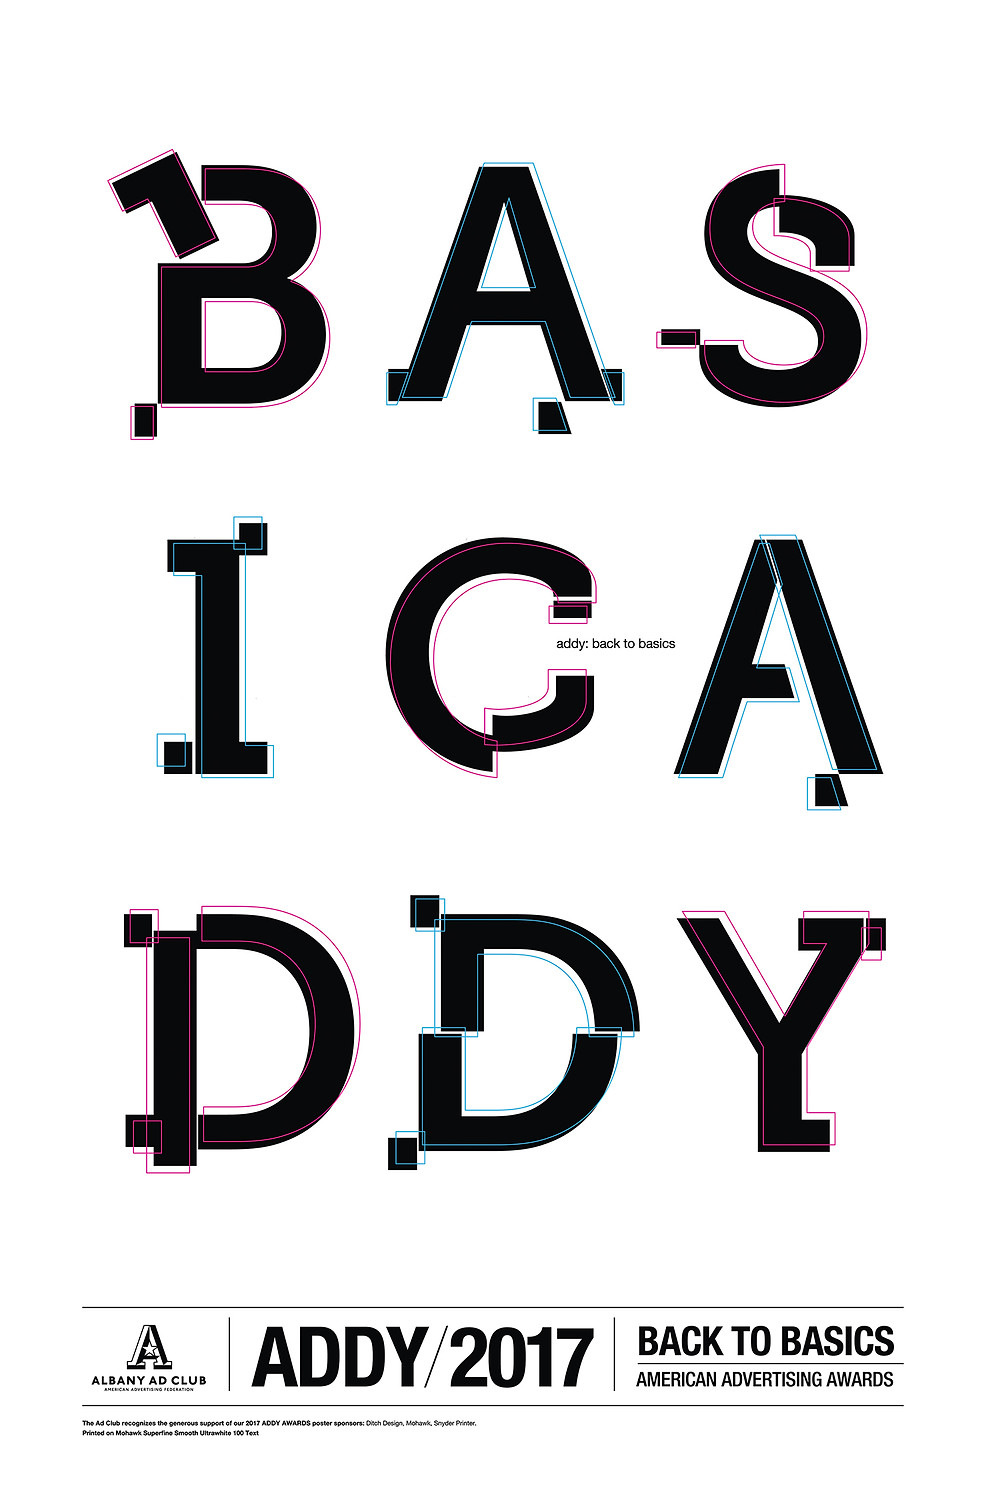 ADDY: Back to Basics